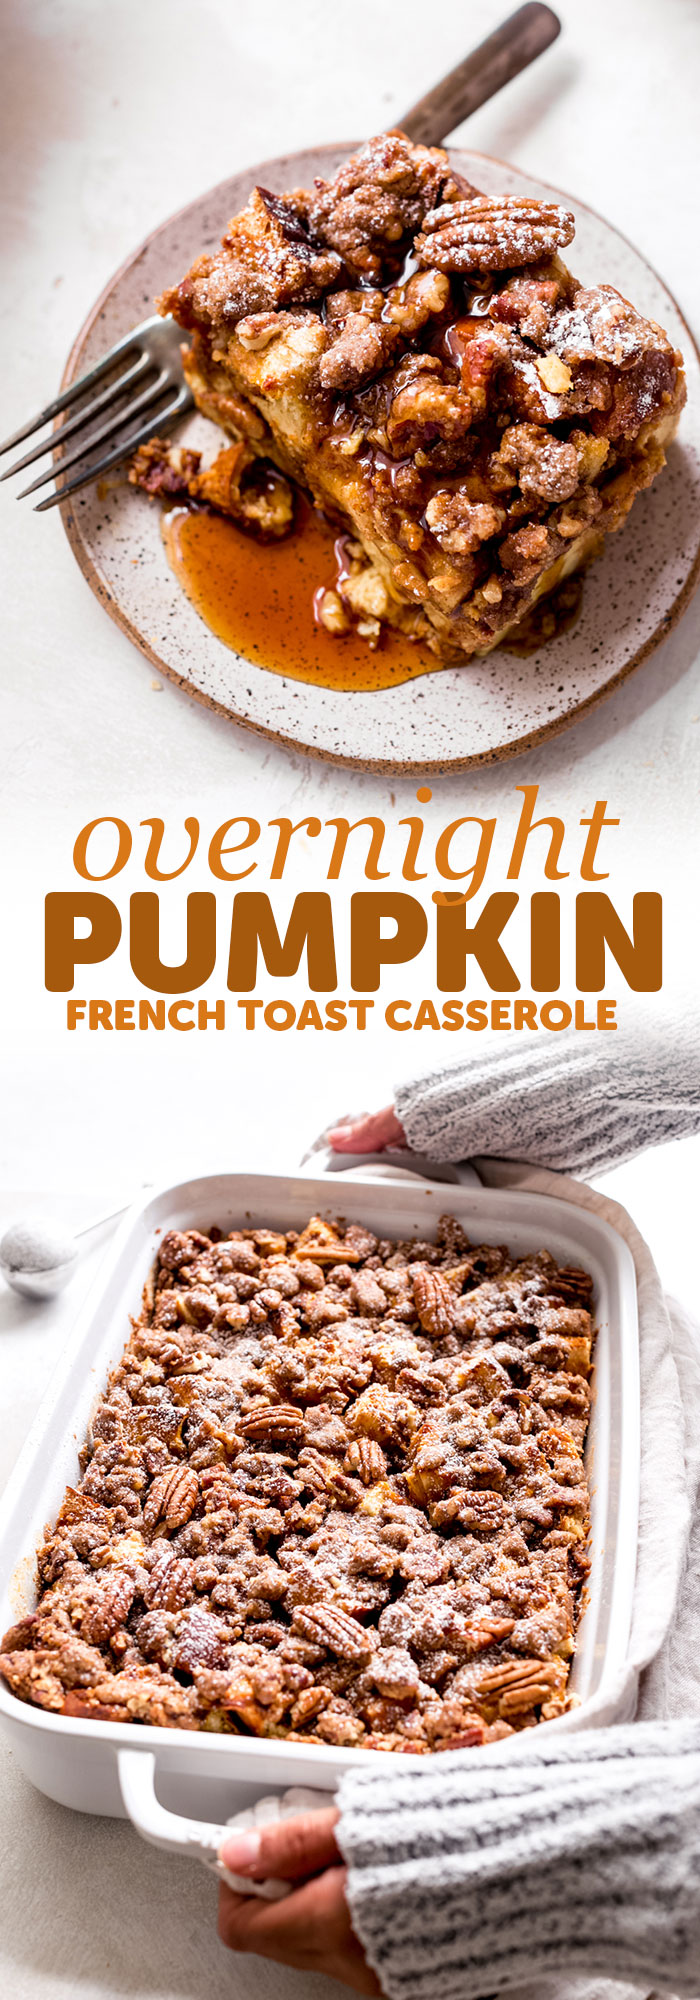 Pumpkin French Toast Casserole - This recipe is super friendly to make ahead of time and perfect for entertaining brunch guests of for Saturday morning breakfast! #pumpkinfrenchtoast #overnightfrenchtoastcasserole #frenchtoastcasserole #frenchtoast | Littlespicejar.com